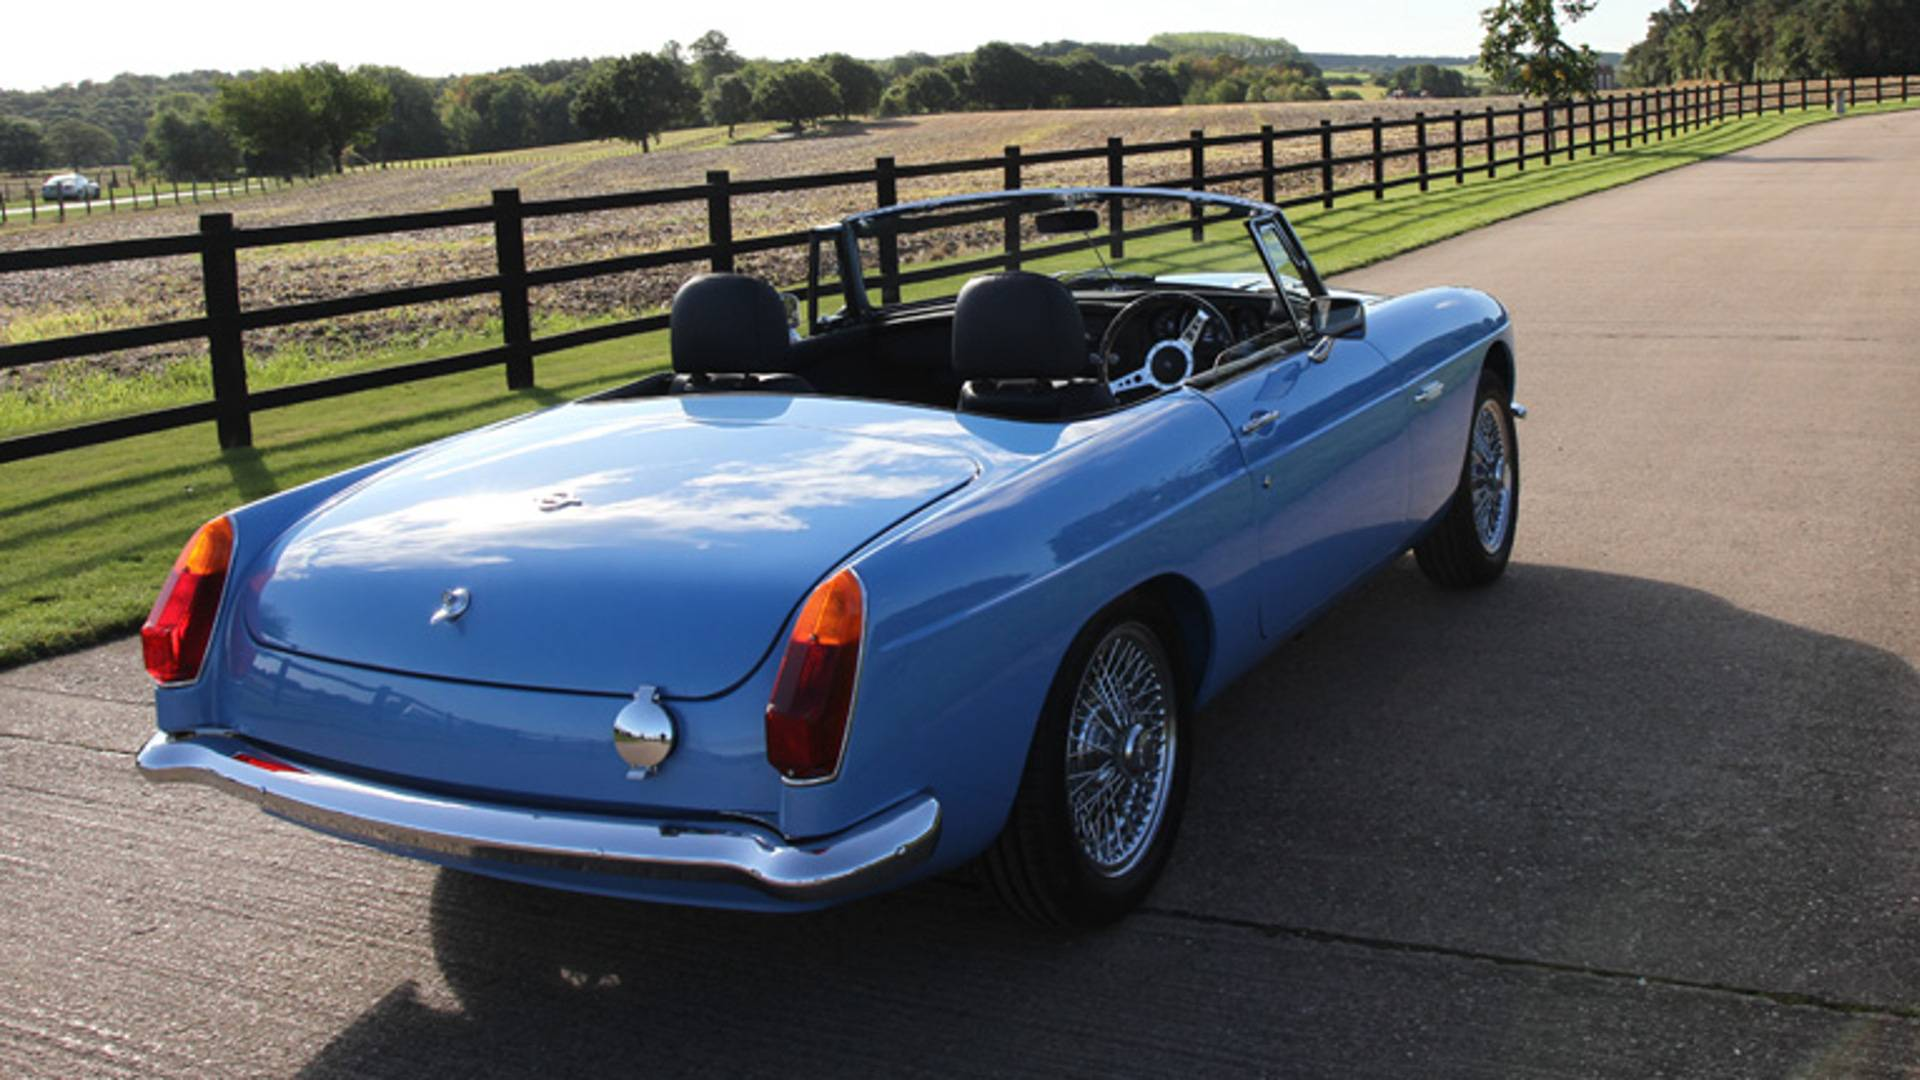 British firm offering all-new electric MG